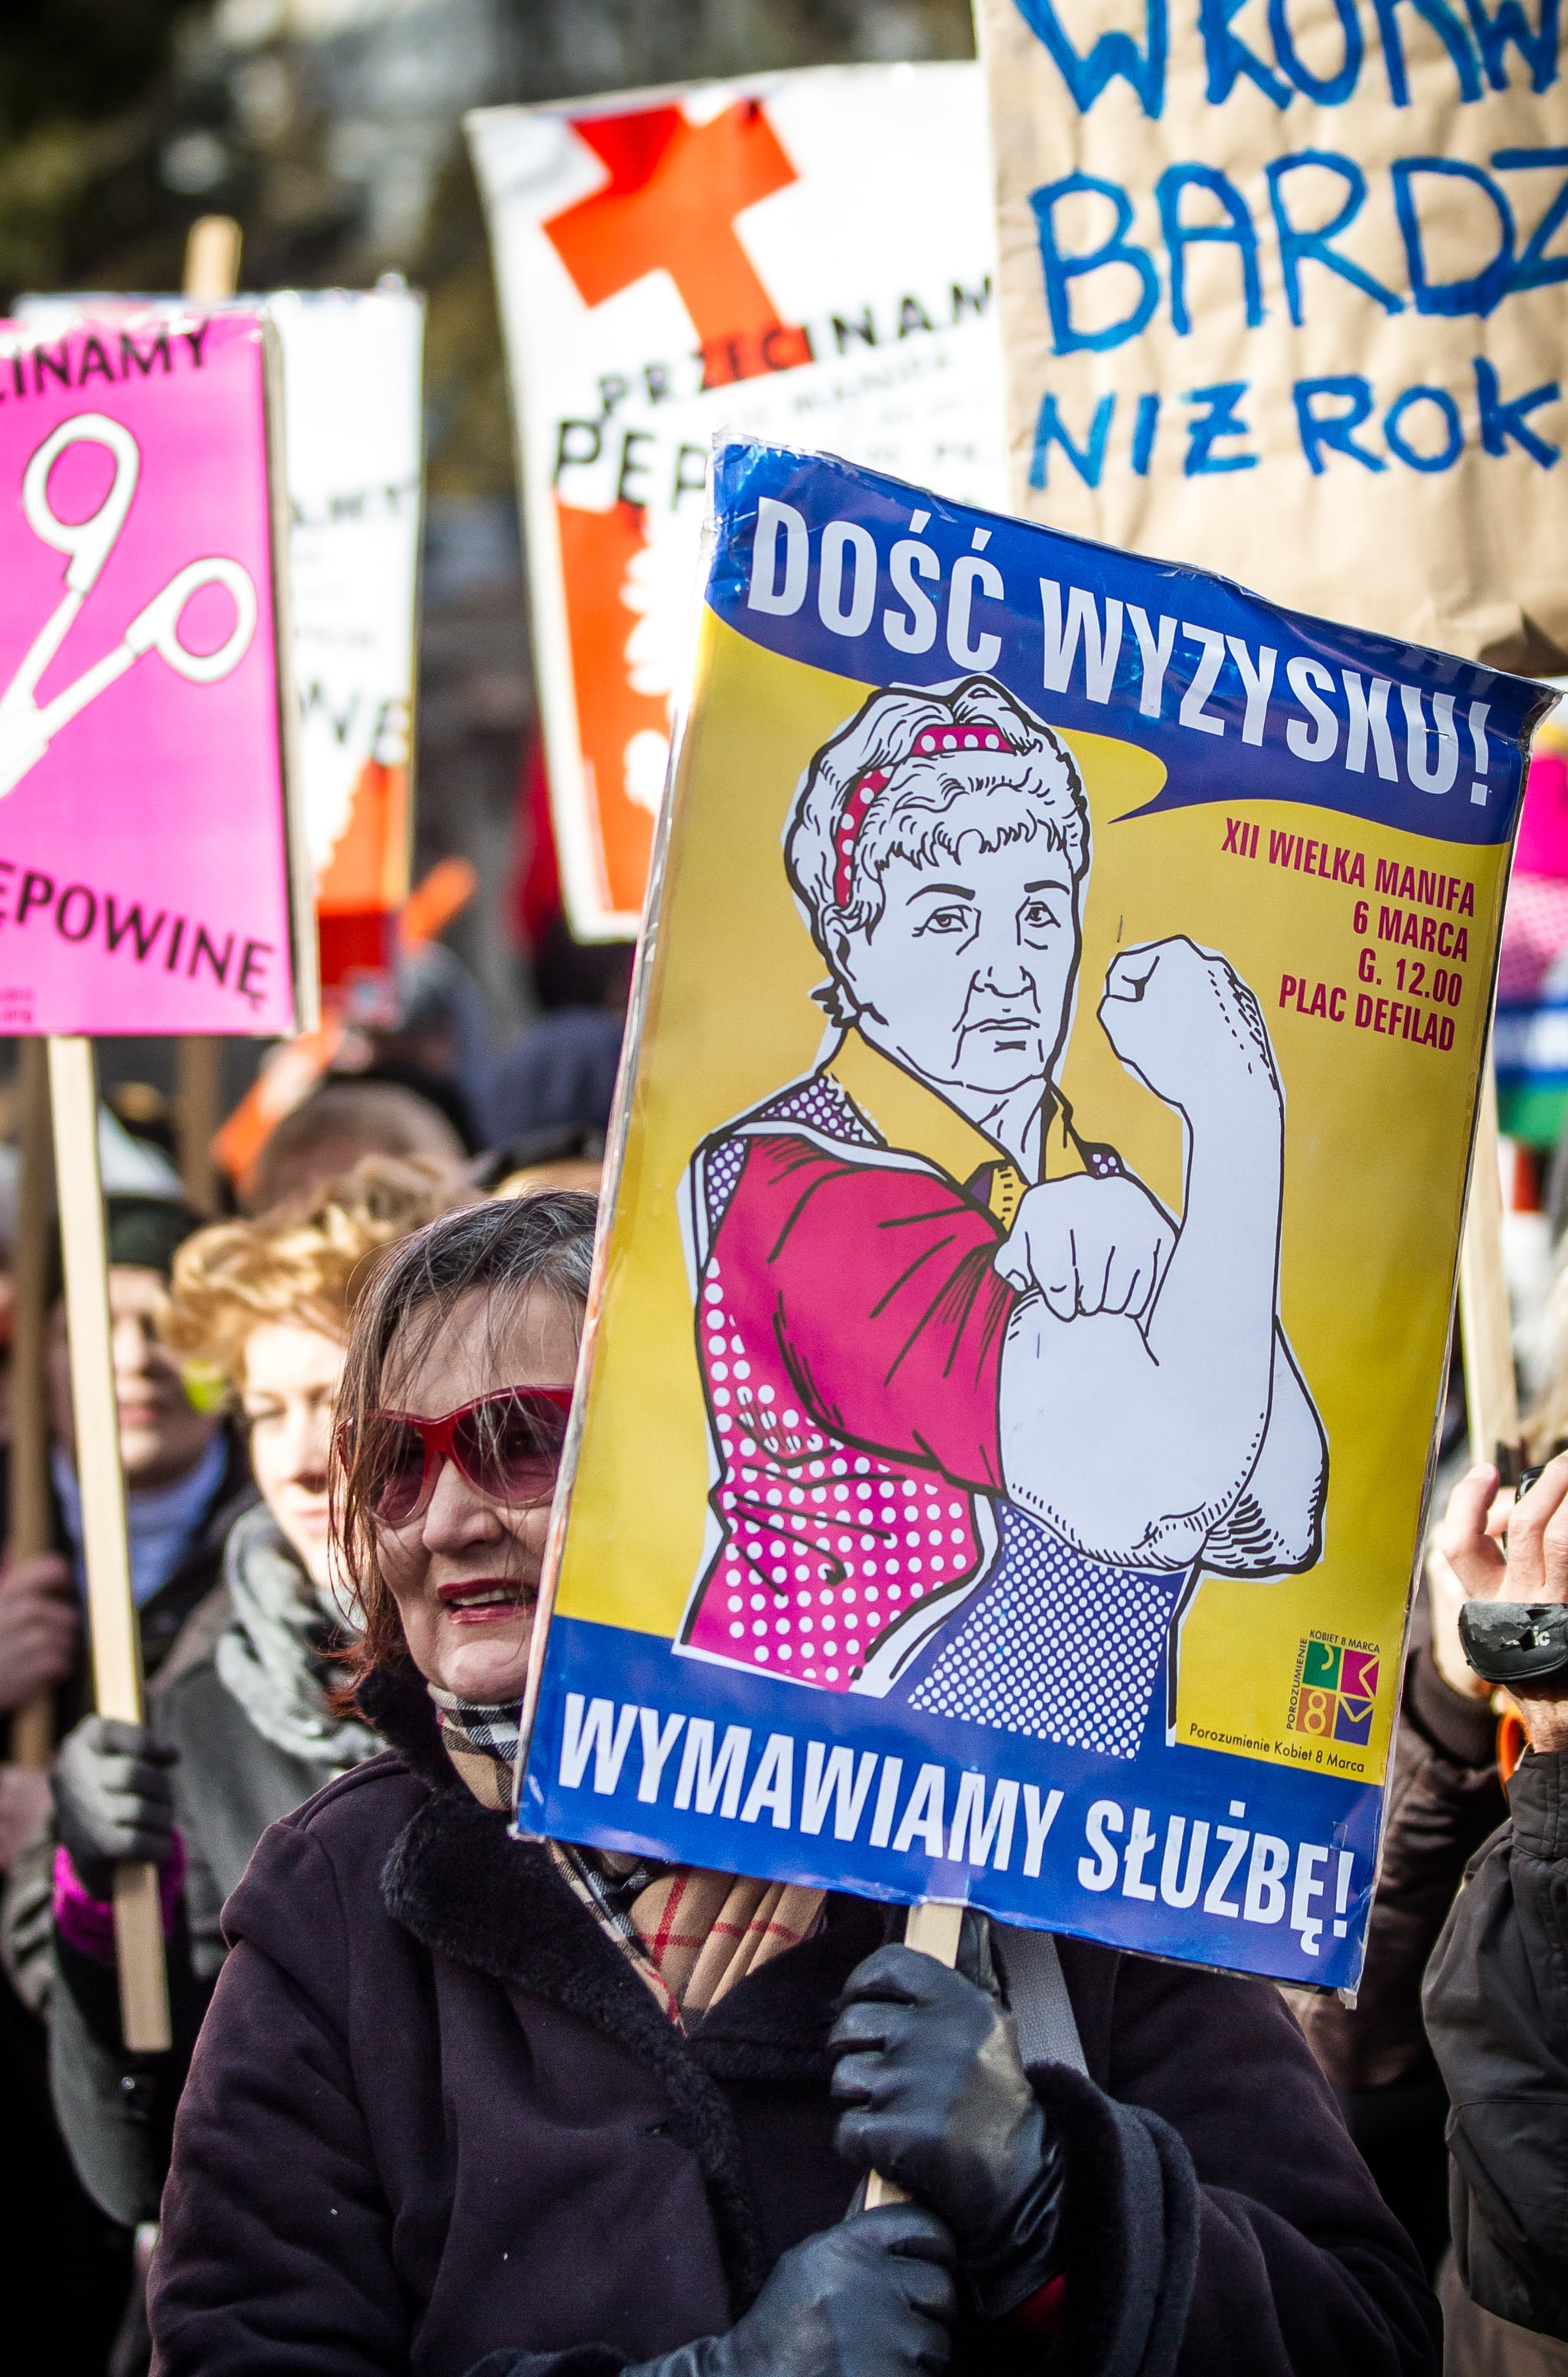 International Women's Day in Poland, 2012